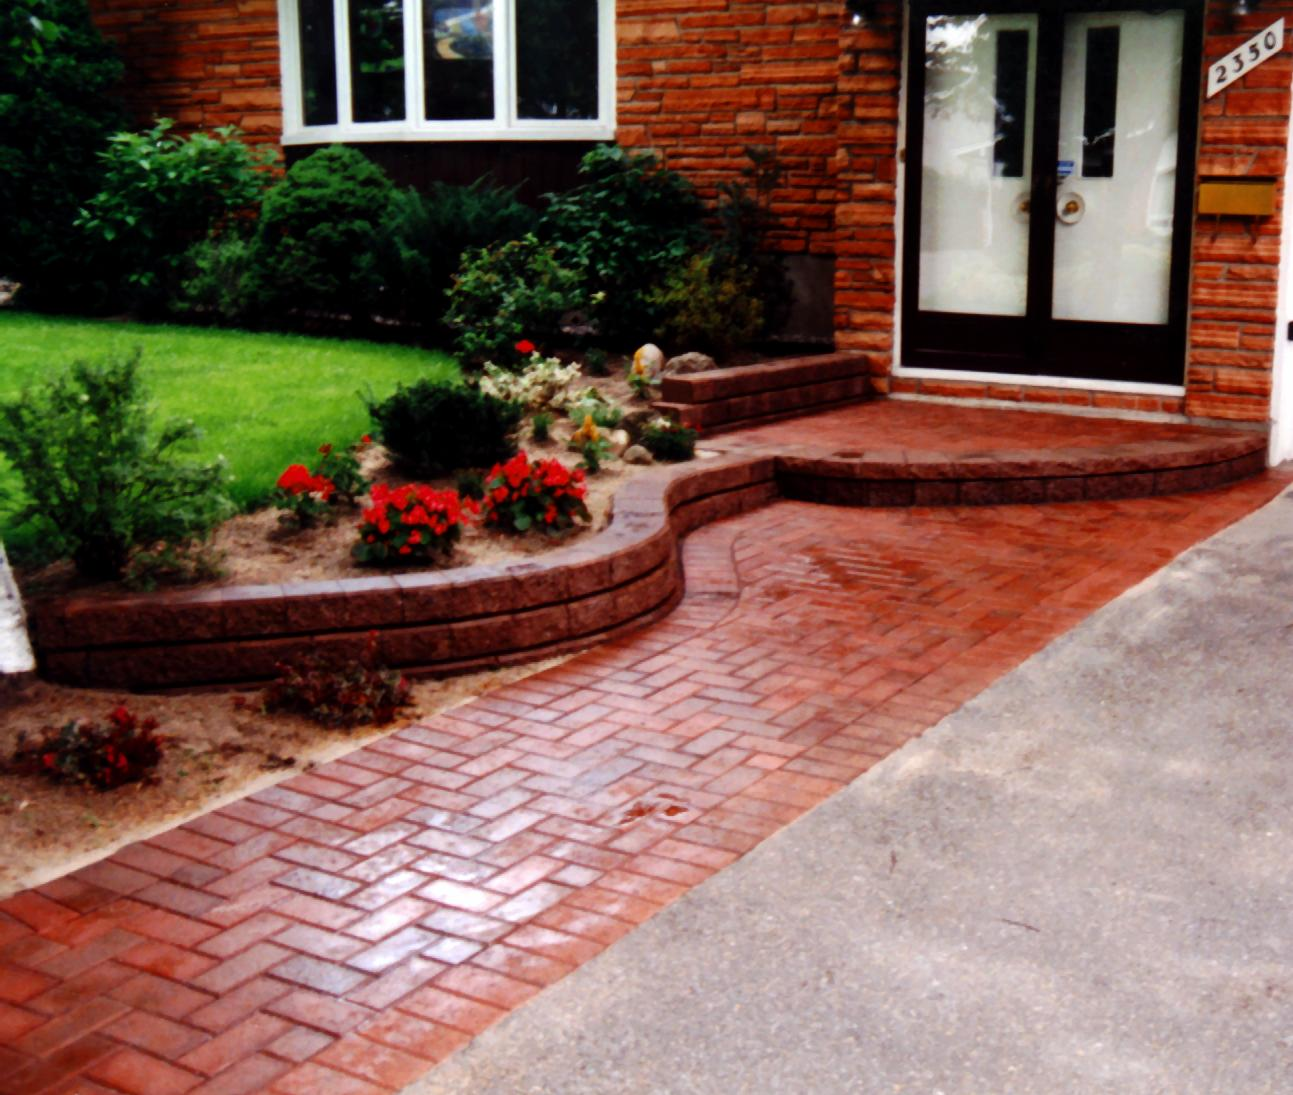 PisaII step with Gardenstone wall entrance